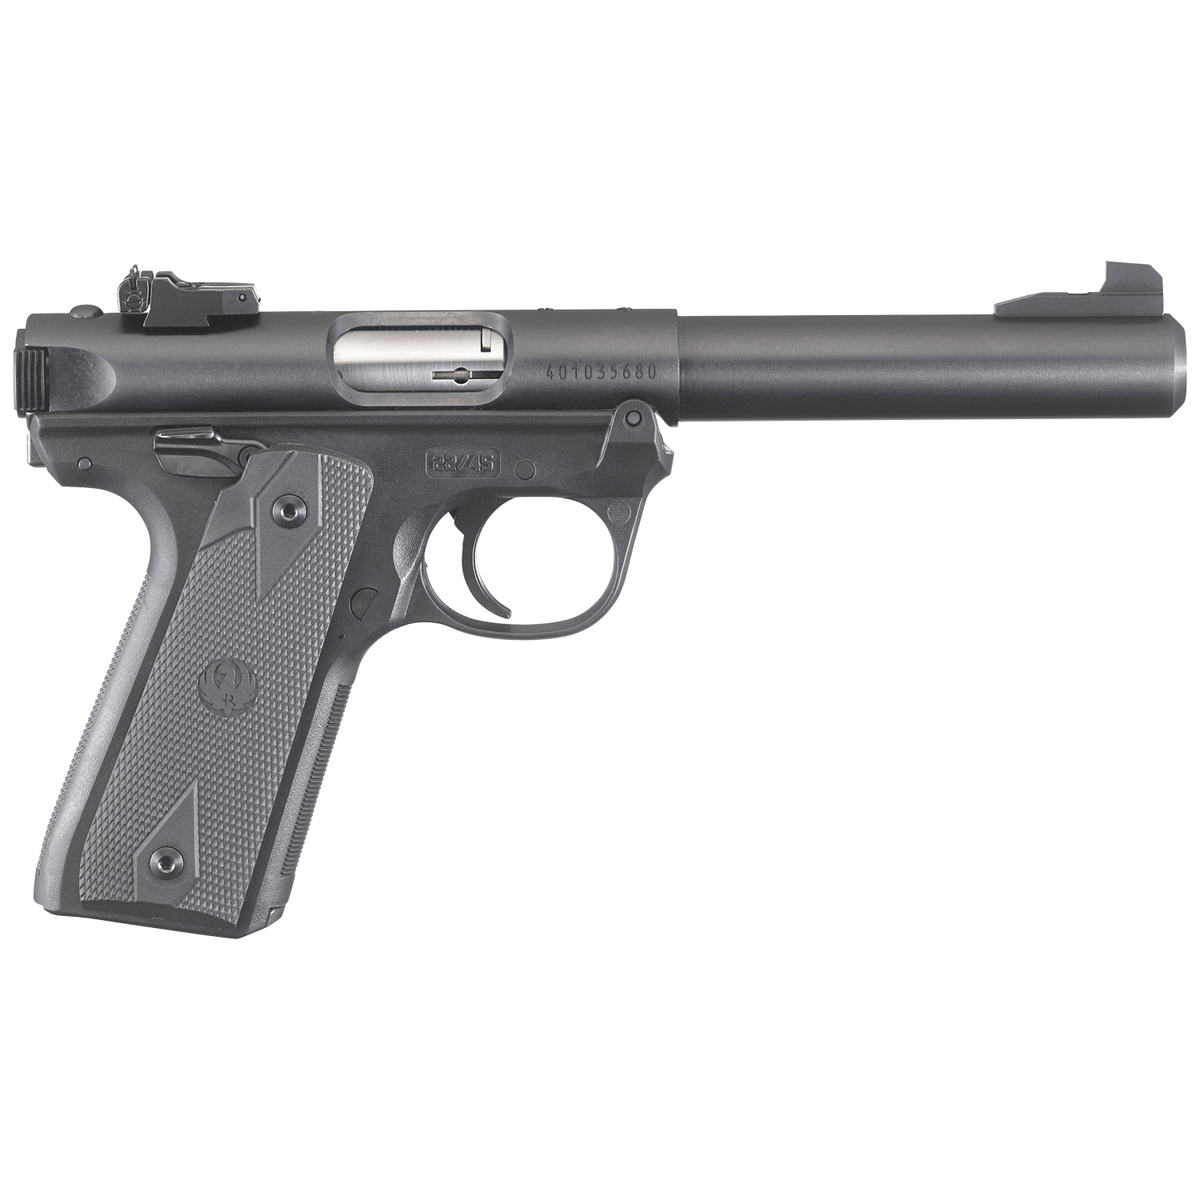 Ruger Mark IV 22/45 22 Long Rifle 5.5in Blued Pistol – 10+1 Rounds